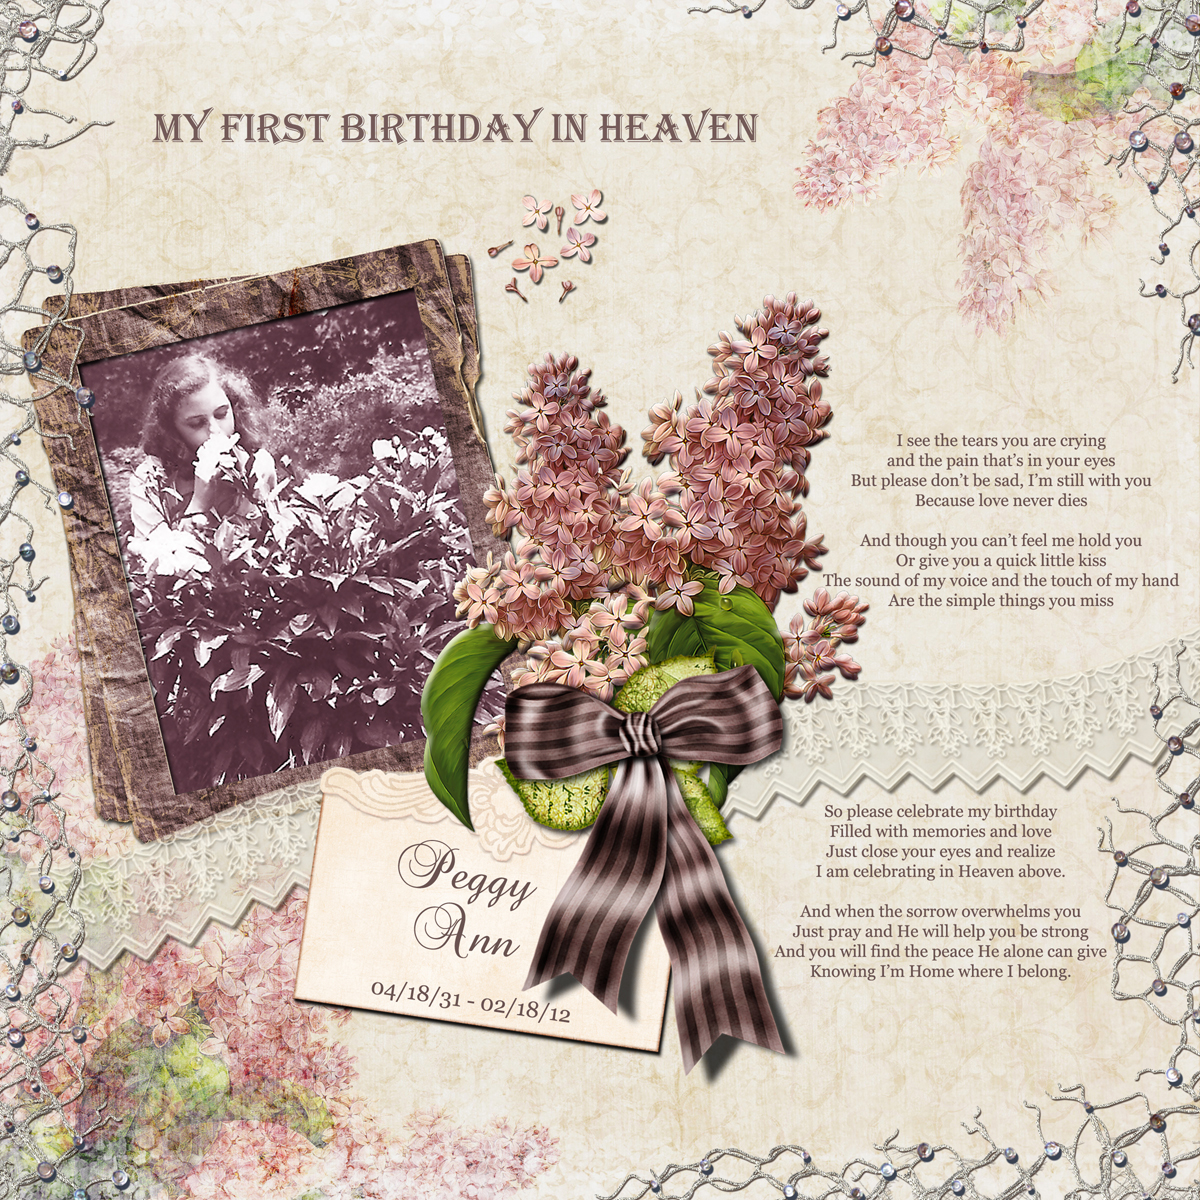 Happy birthday from heaven quotes quotesgram